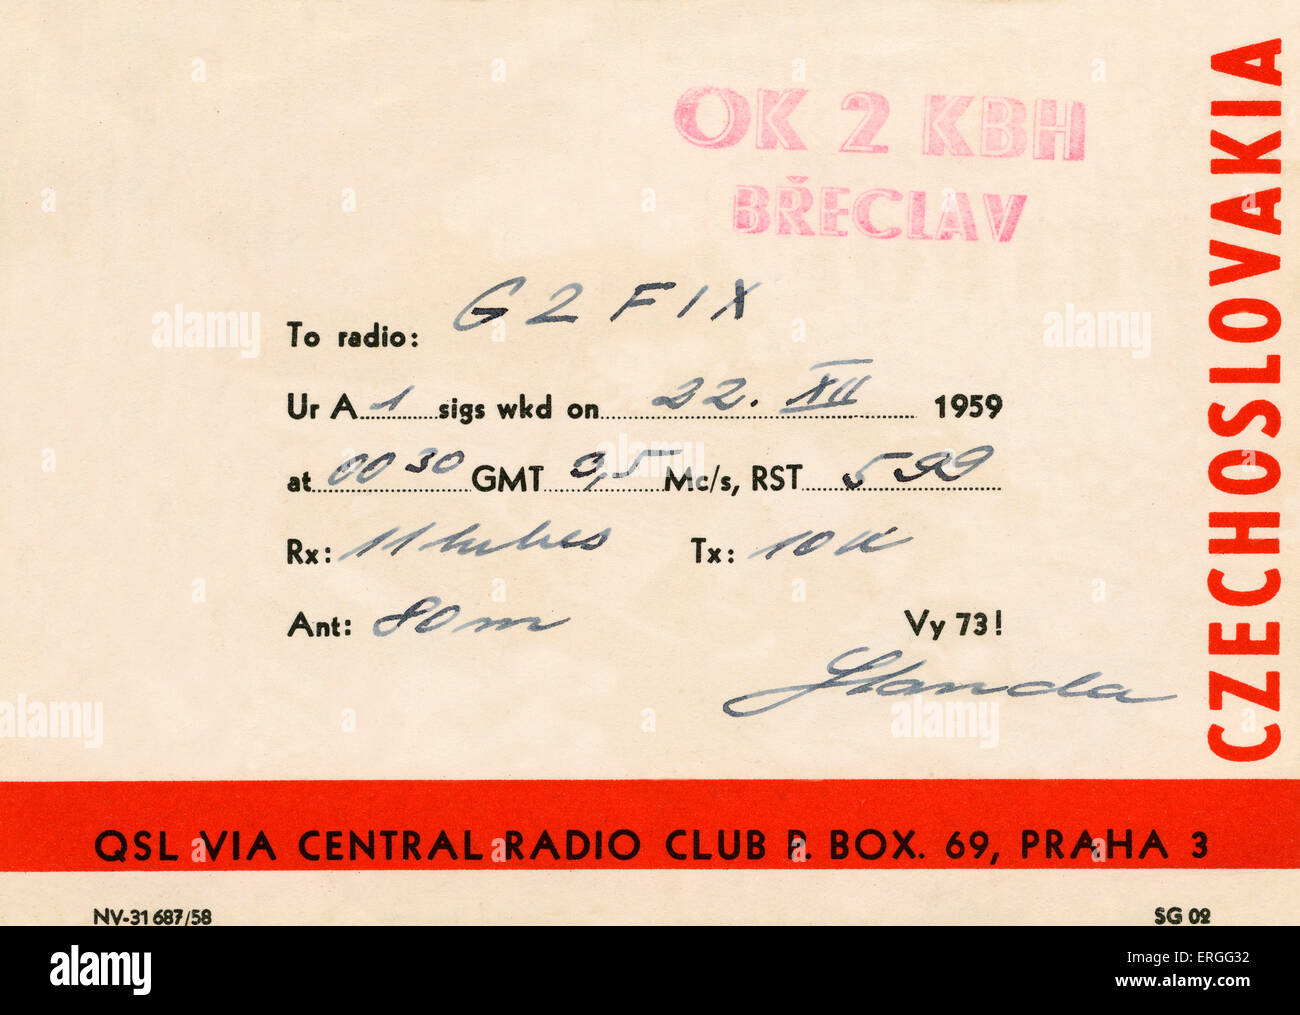 Amateur radio reception card, completed on 11 December 1959. Sent to Central Radio Club, Prague, Czechoslovakia - Stock Image